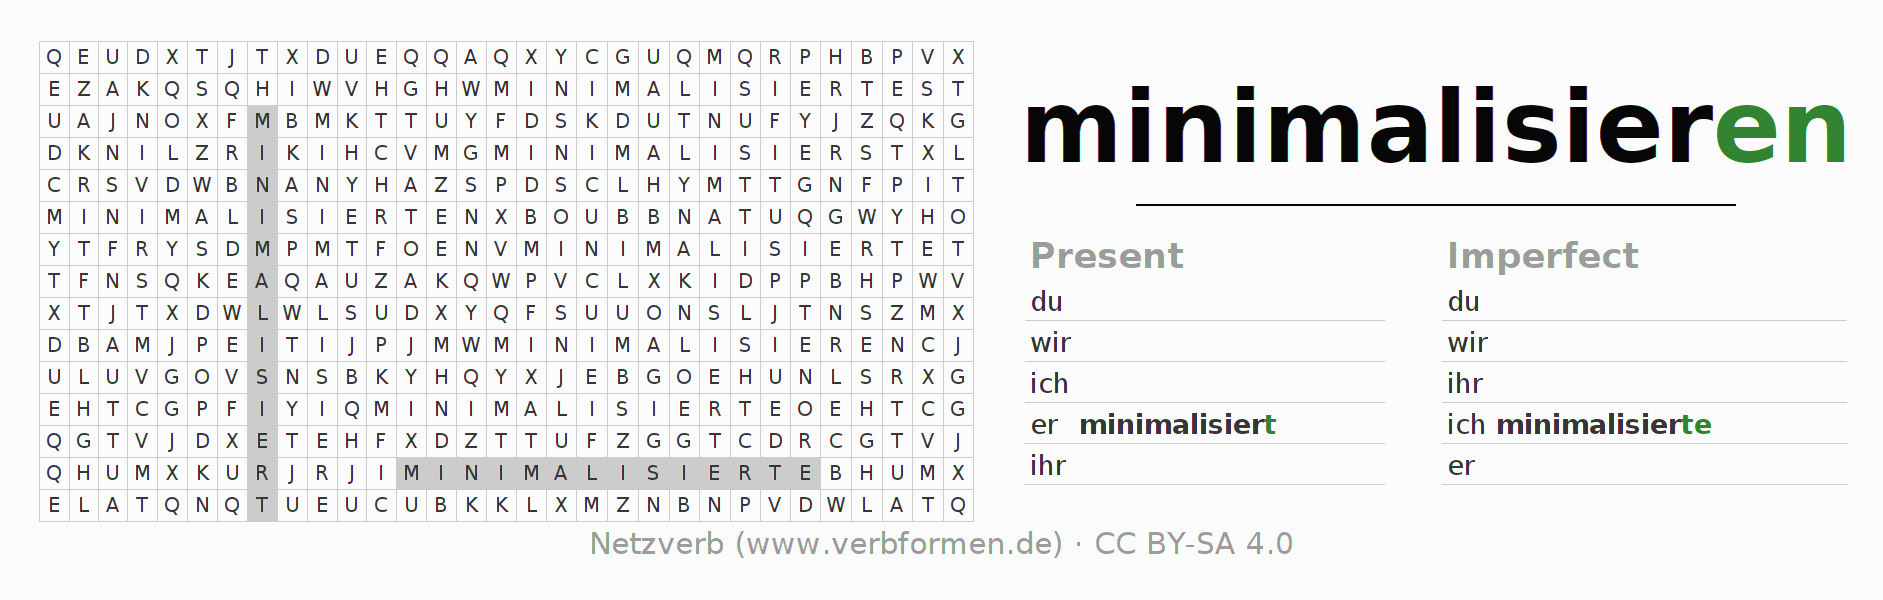 Word search puzzle for the conjugation of the verb minimalisieren